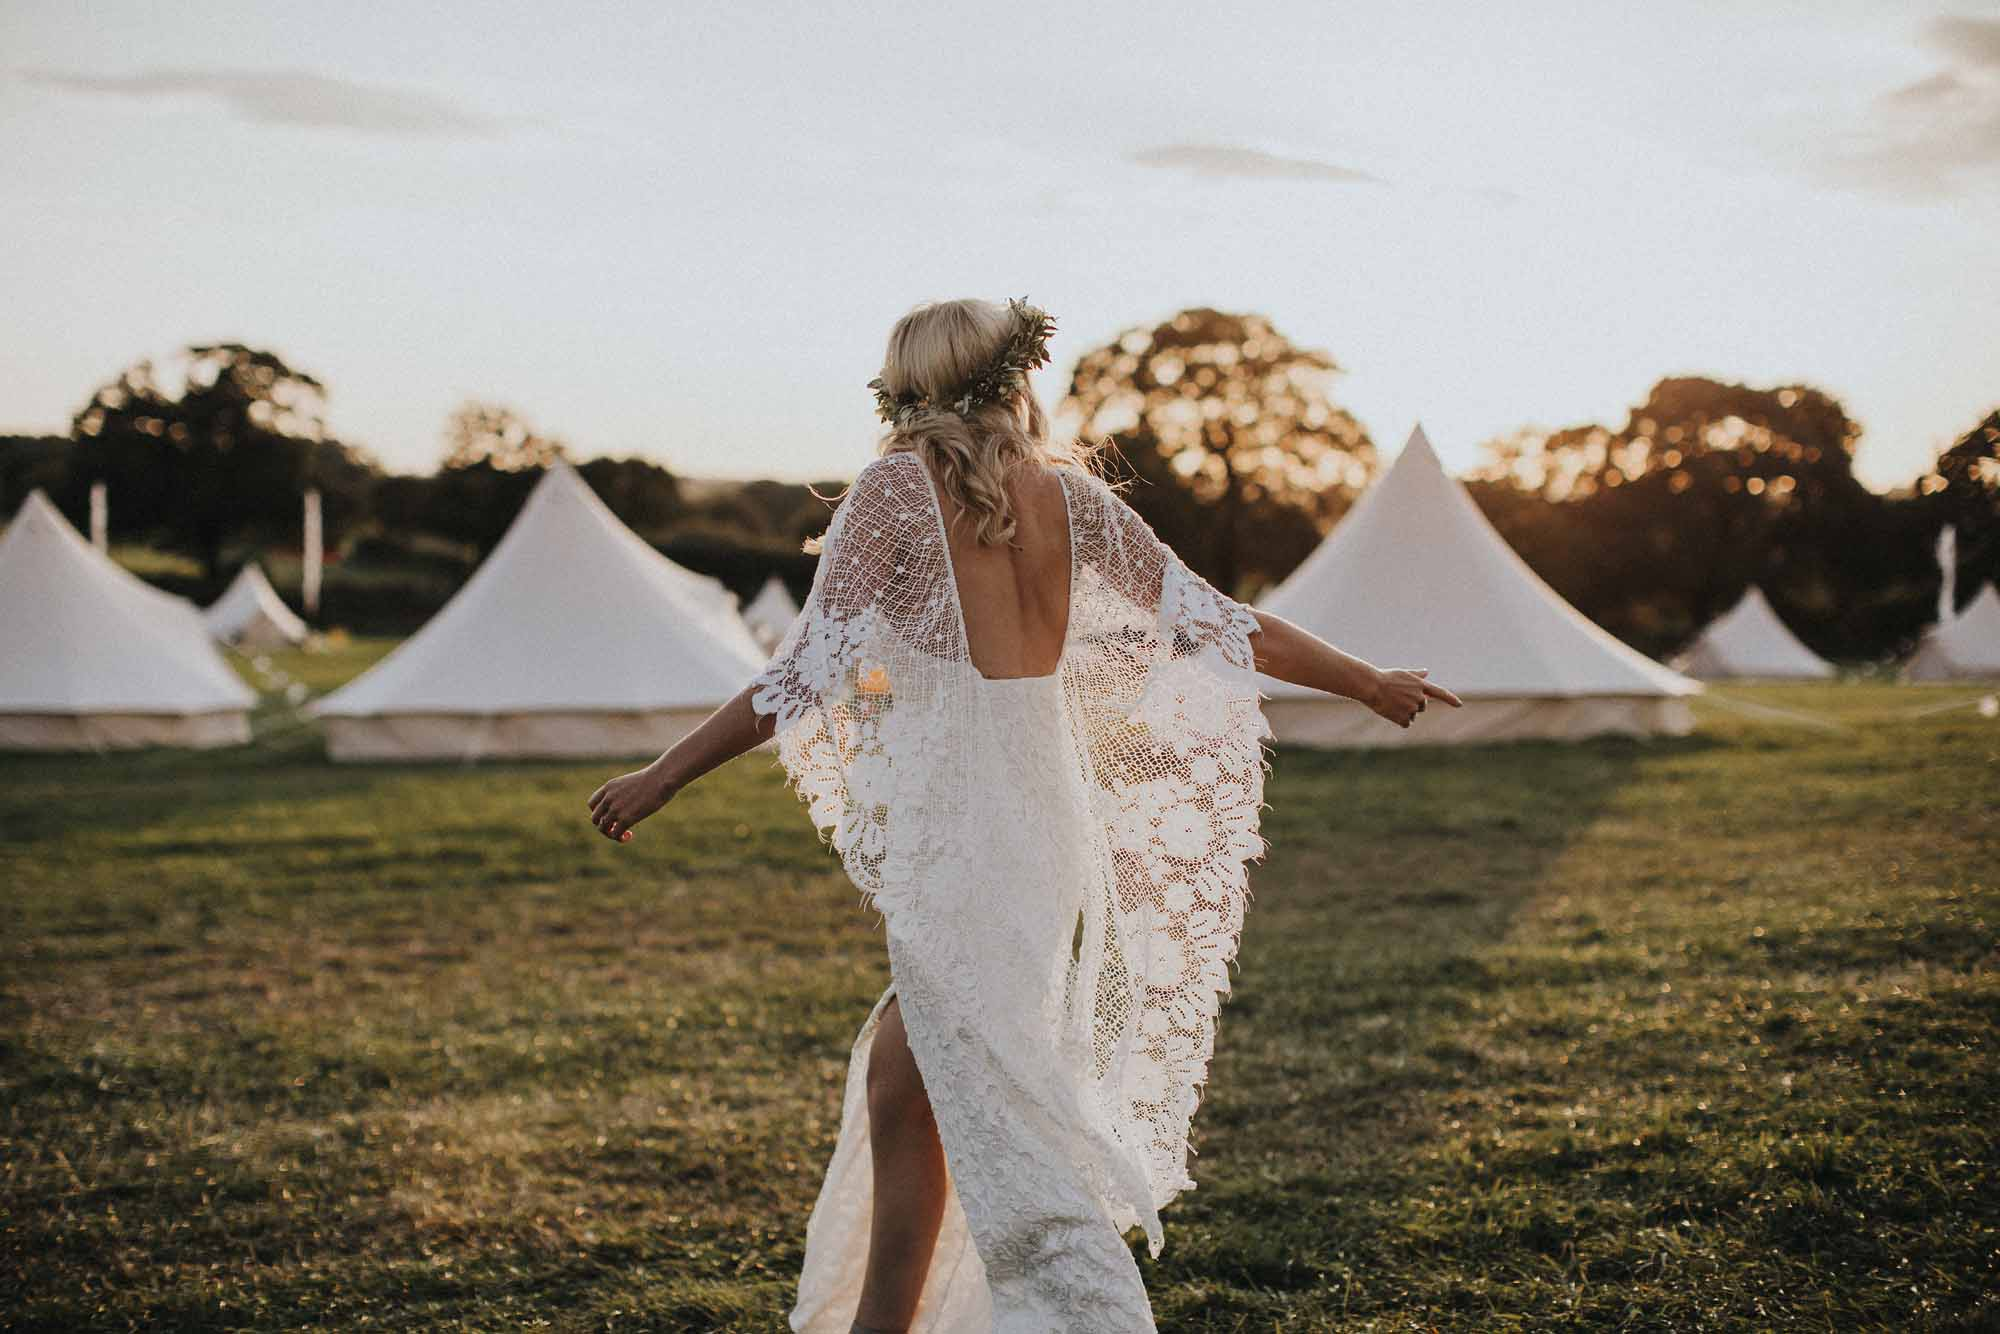 Boho Wedding Dresses For Free-Spirited Bohemian Brides